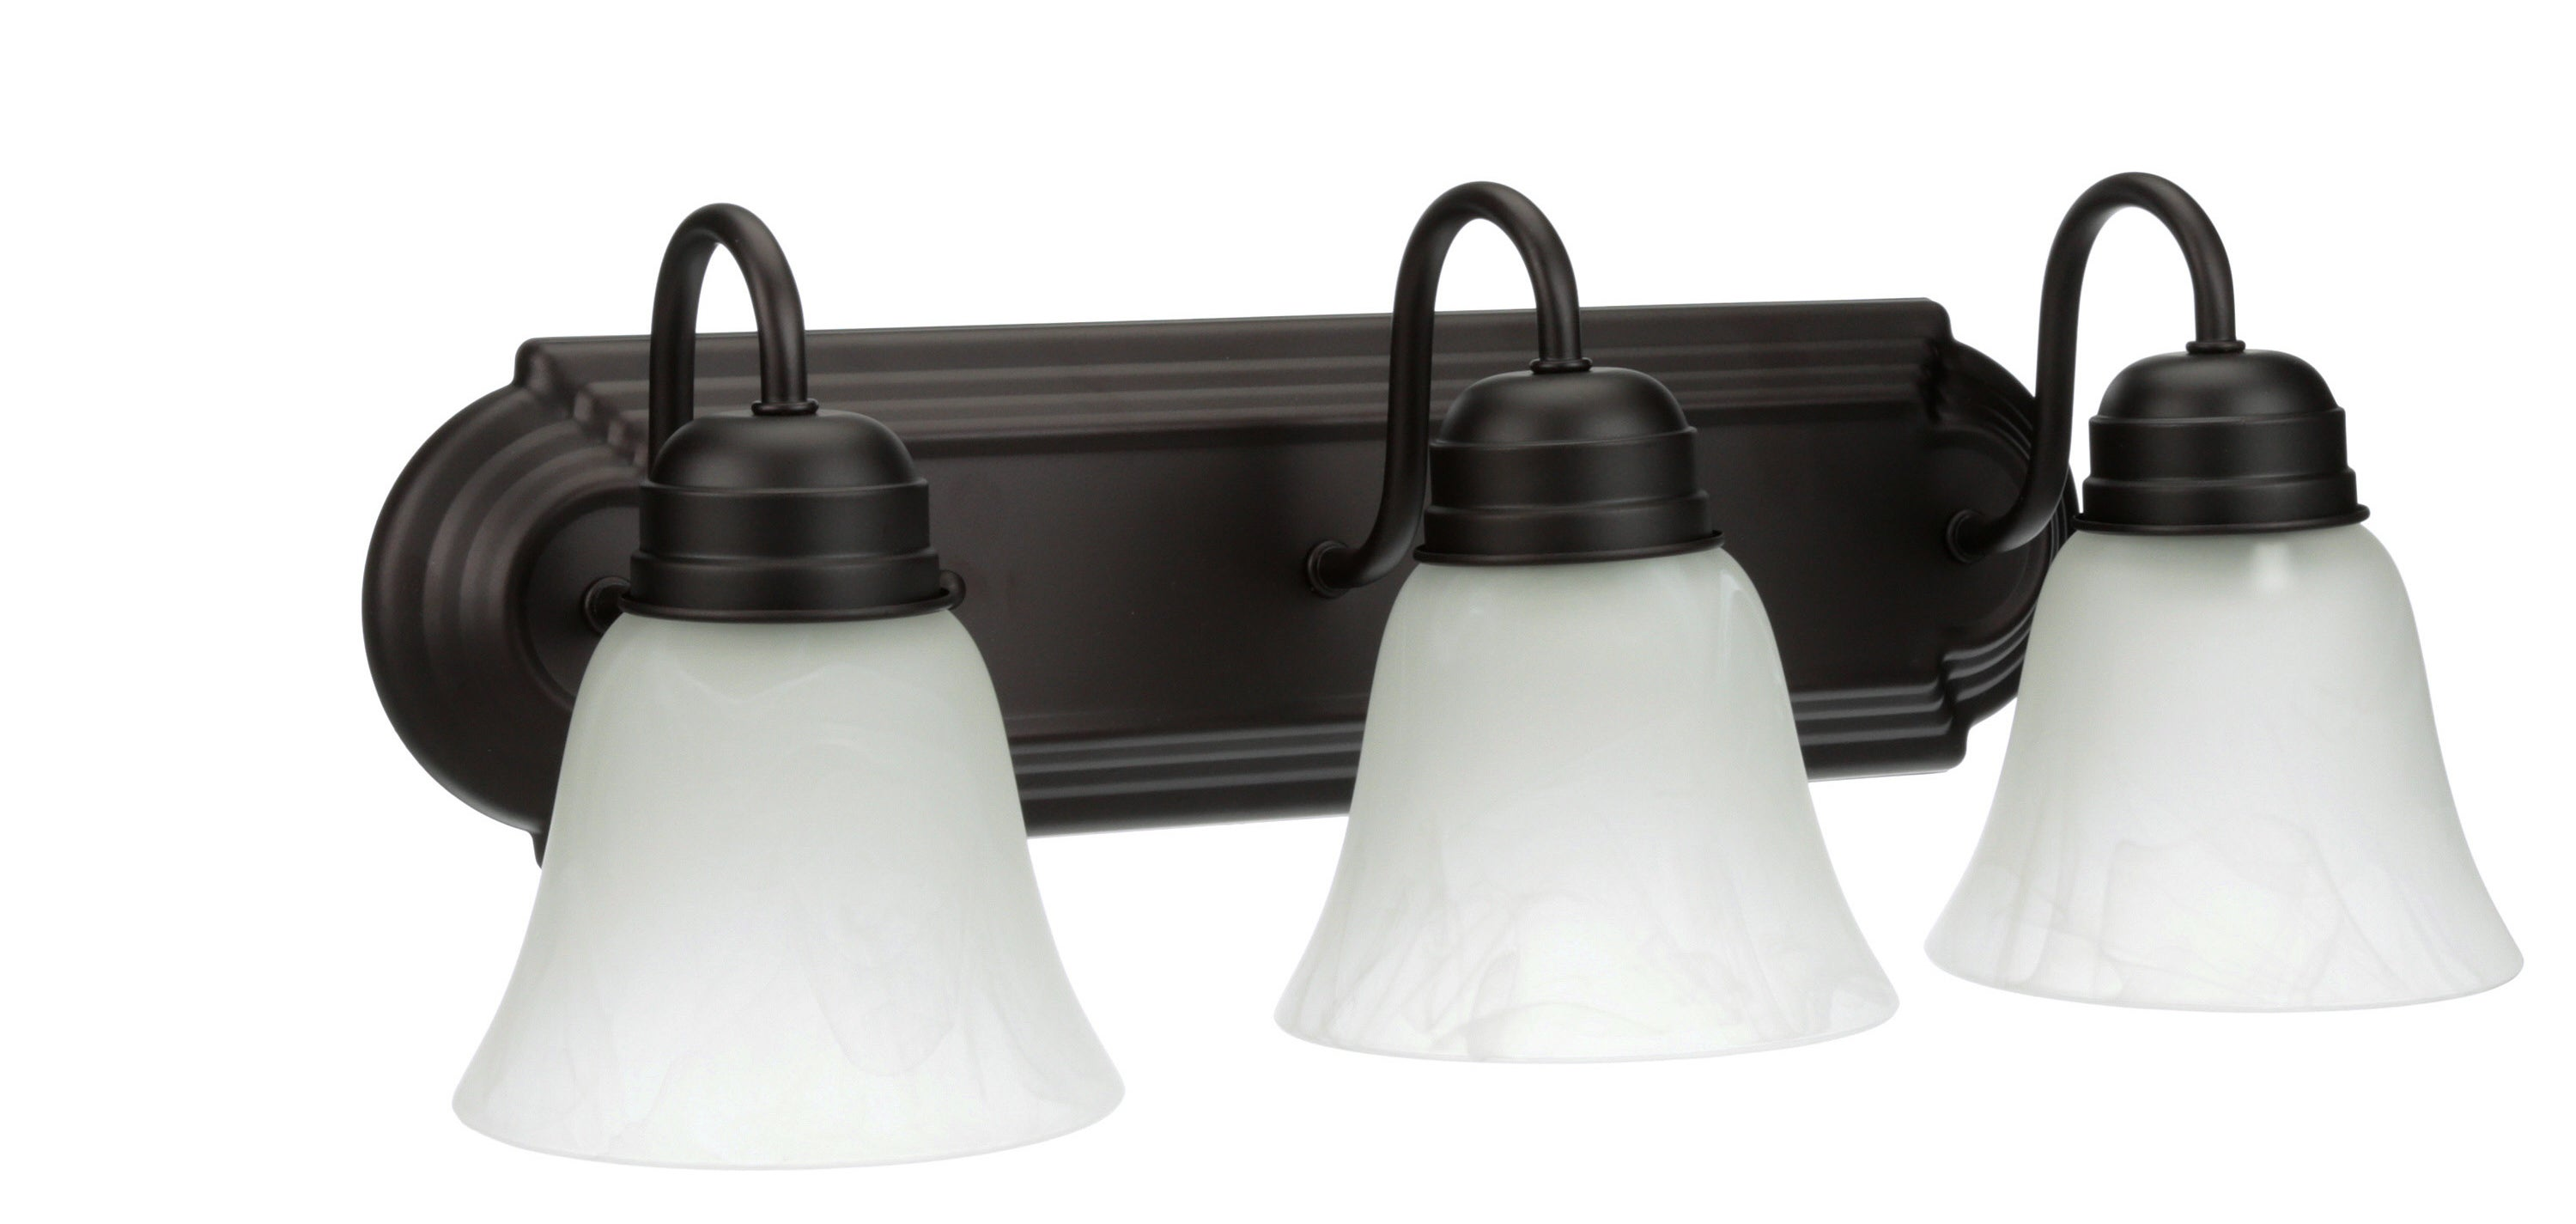 The black metal light fixture with three hanging lights